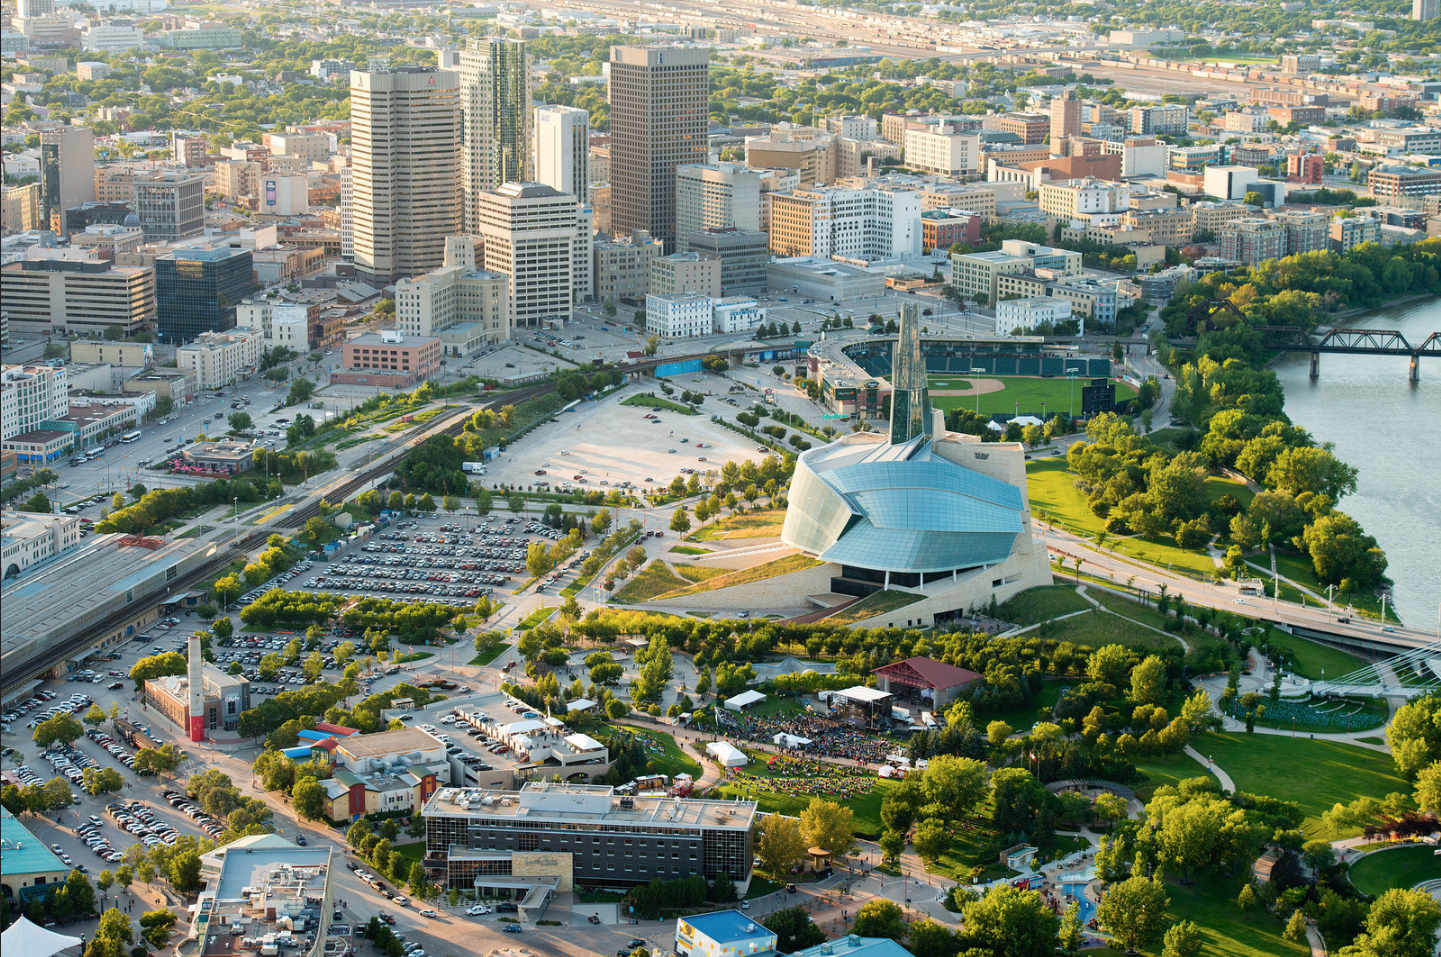 The Forks (where the Red and Assiniboine Rivers meet in Winnipeg) has been transformed into a mixed-use public space with two museums, baseball field, outdoor performance space, winter skating, market and hotel.